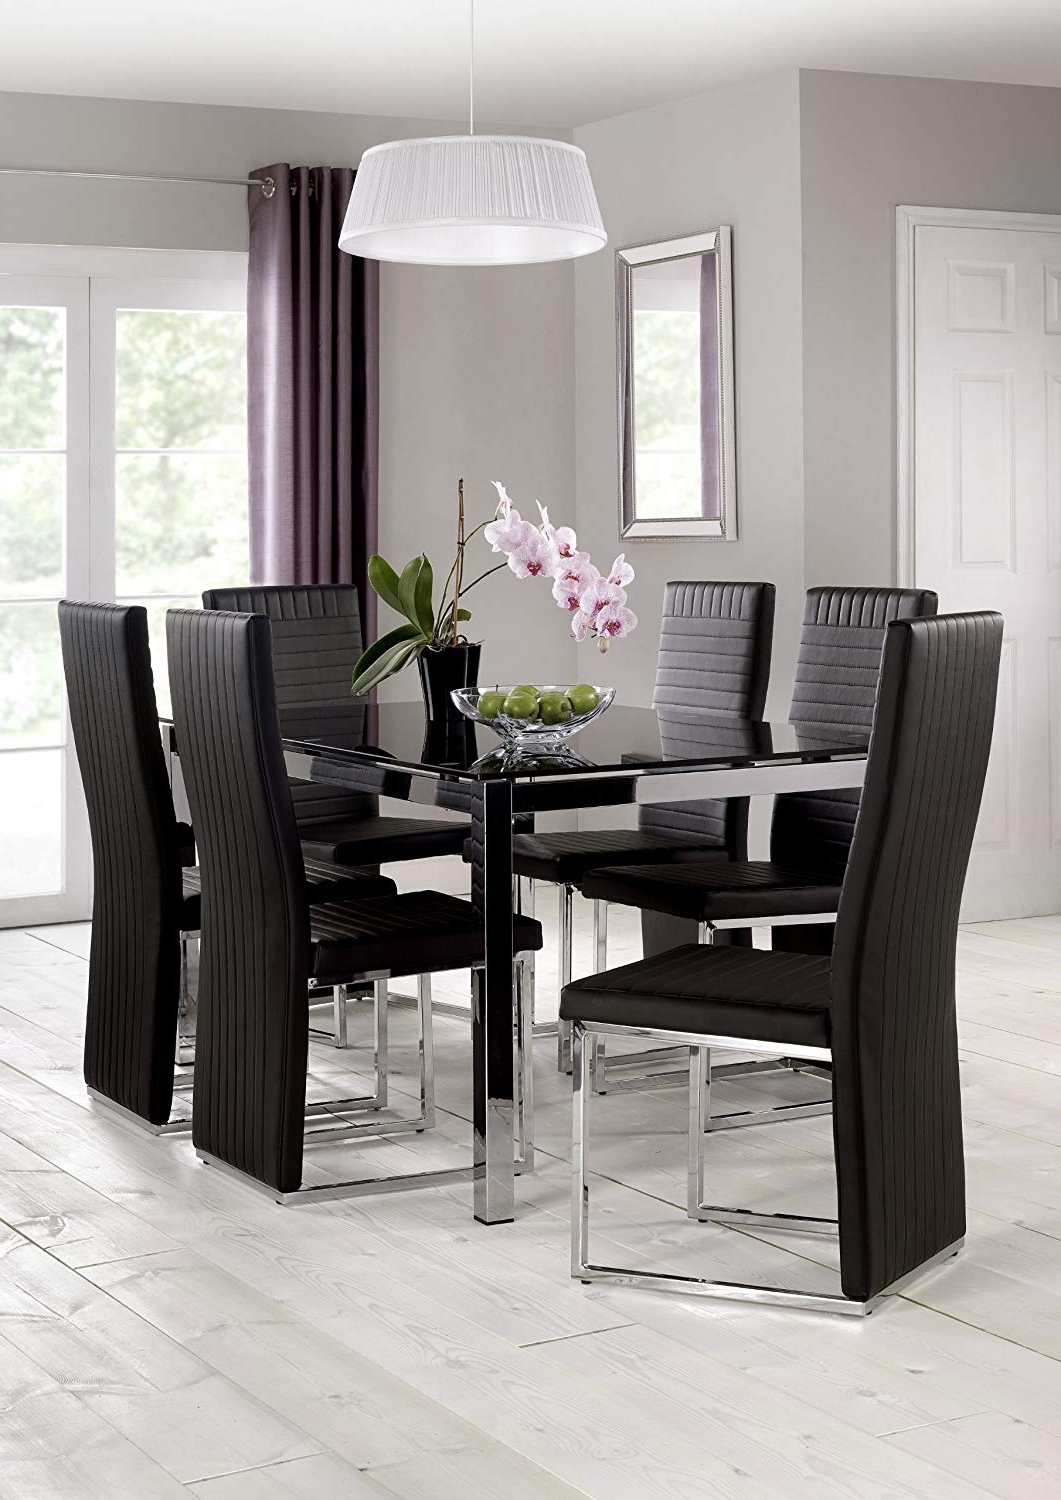 Julian Bowen Tempo Glass Dining Table, Chrome/black: Amazon.co.uk Throughout Well Liked Black Glass Dining Tables 6 Chairs (Gallery 2 of 25)